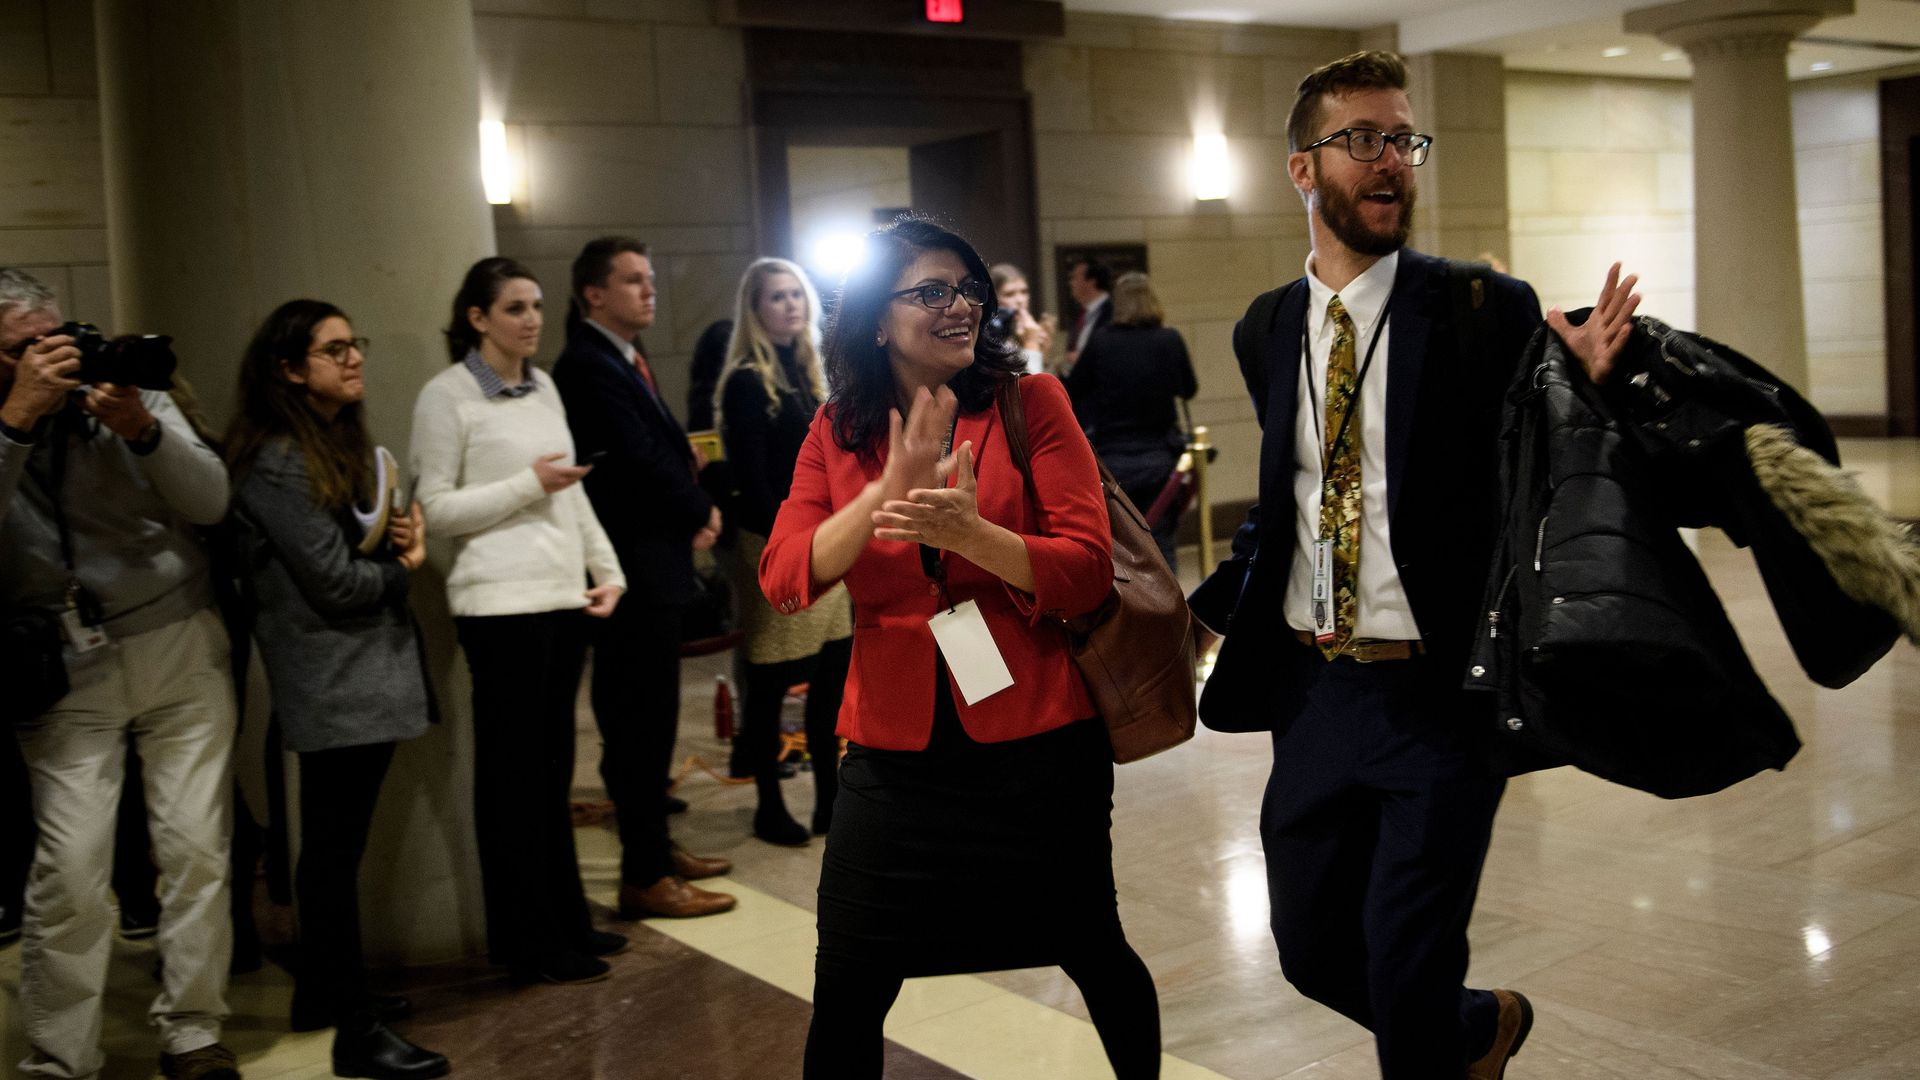 Rashida Tlaib walks through the halls in Congress